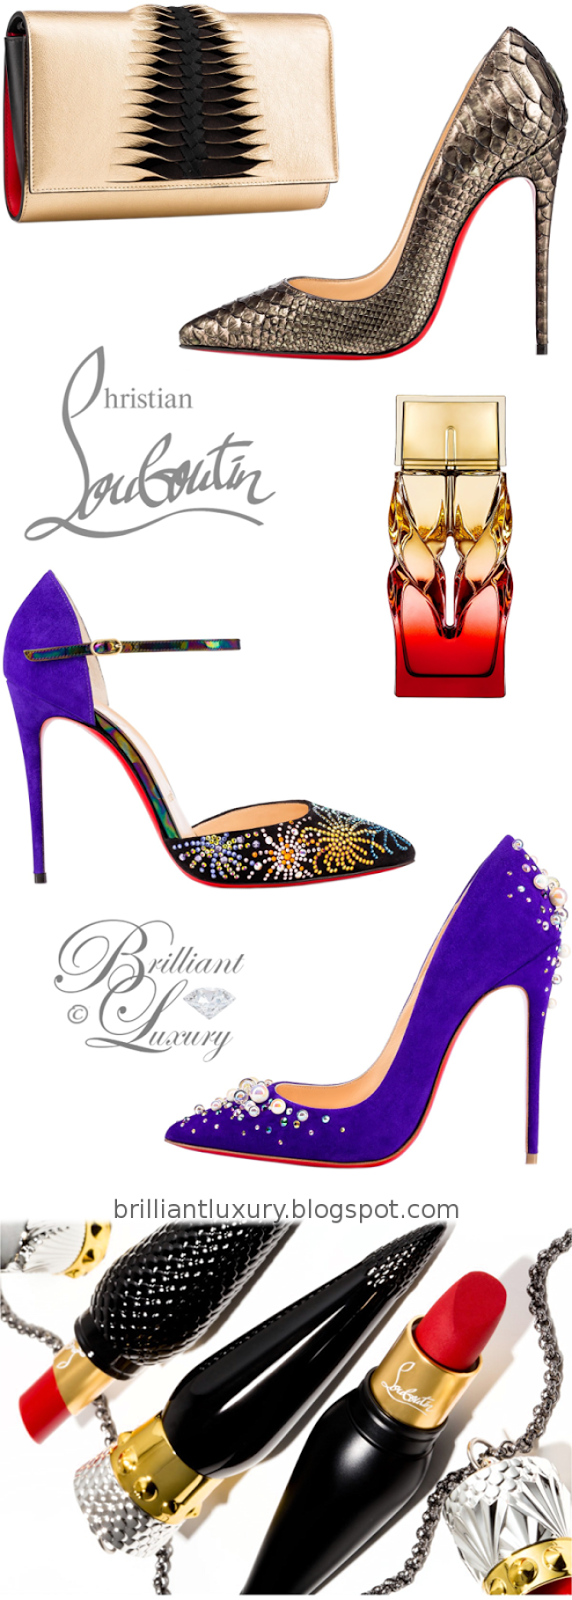 Brilliant Luxury ♦ New Arrivals ~ Christian Louboutin